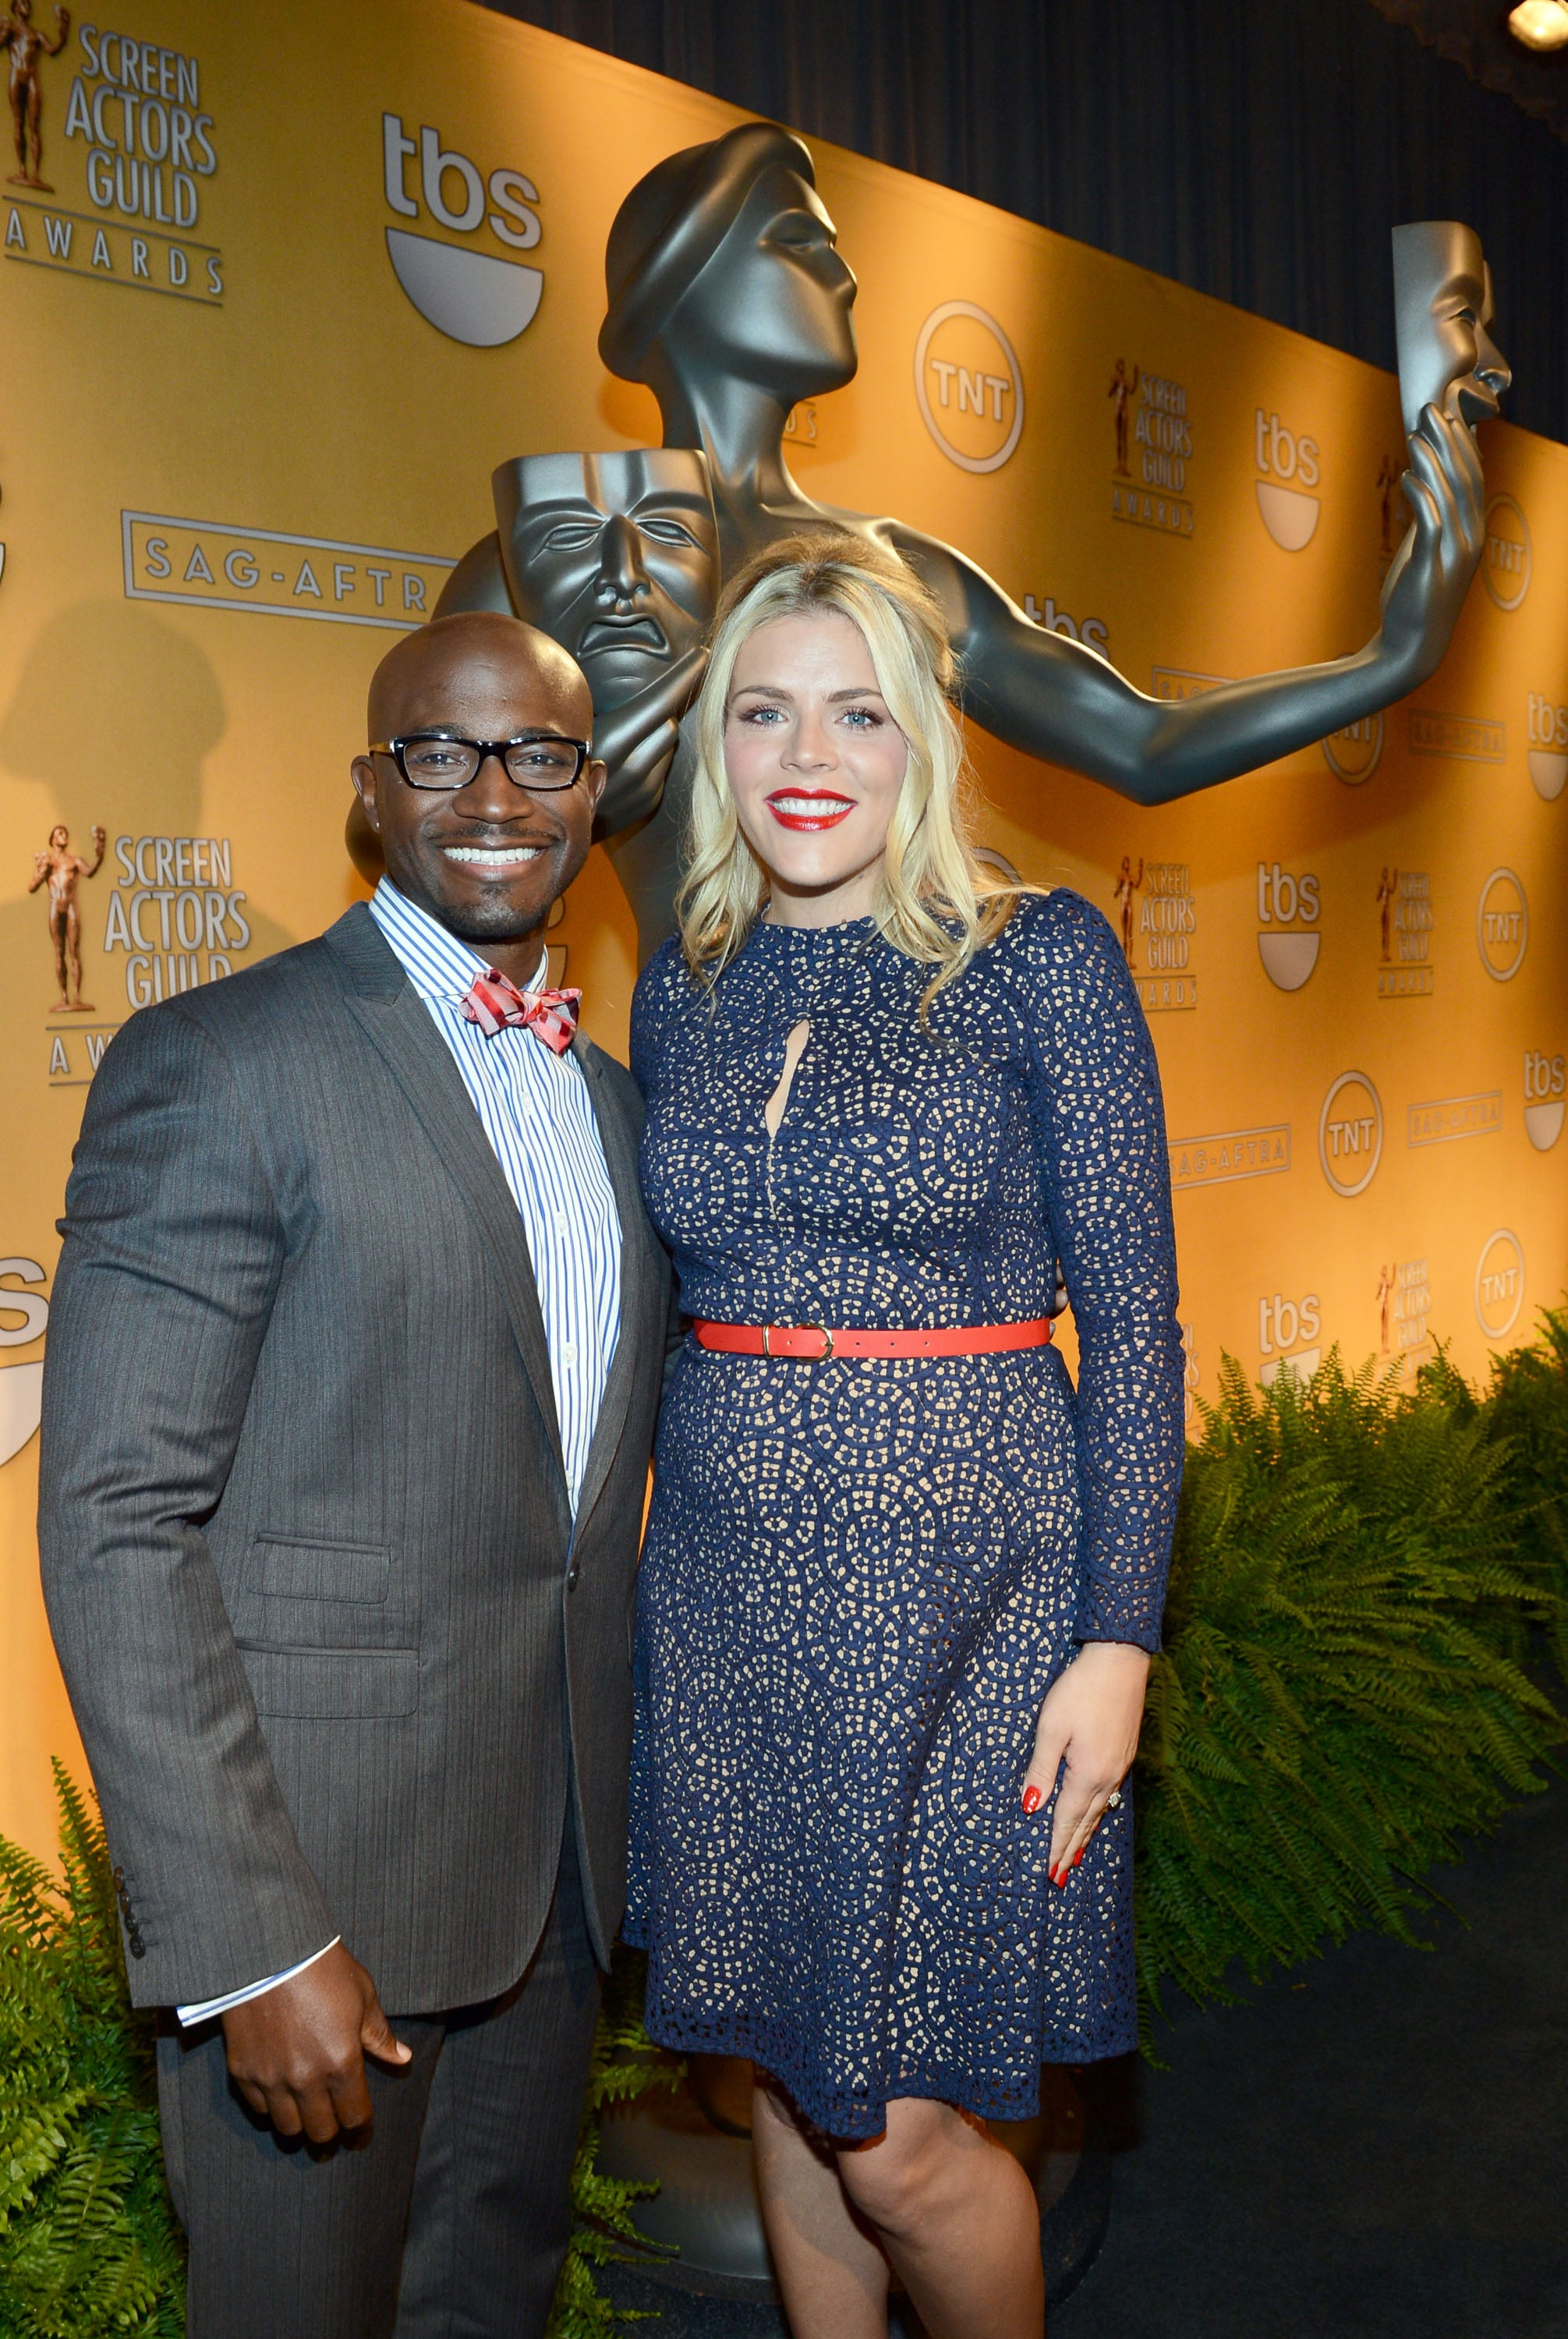 Taye Diggs and Busy Phillips stepped out in LA for the SAG Nominations.